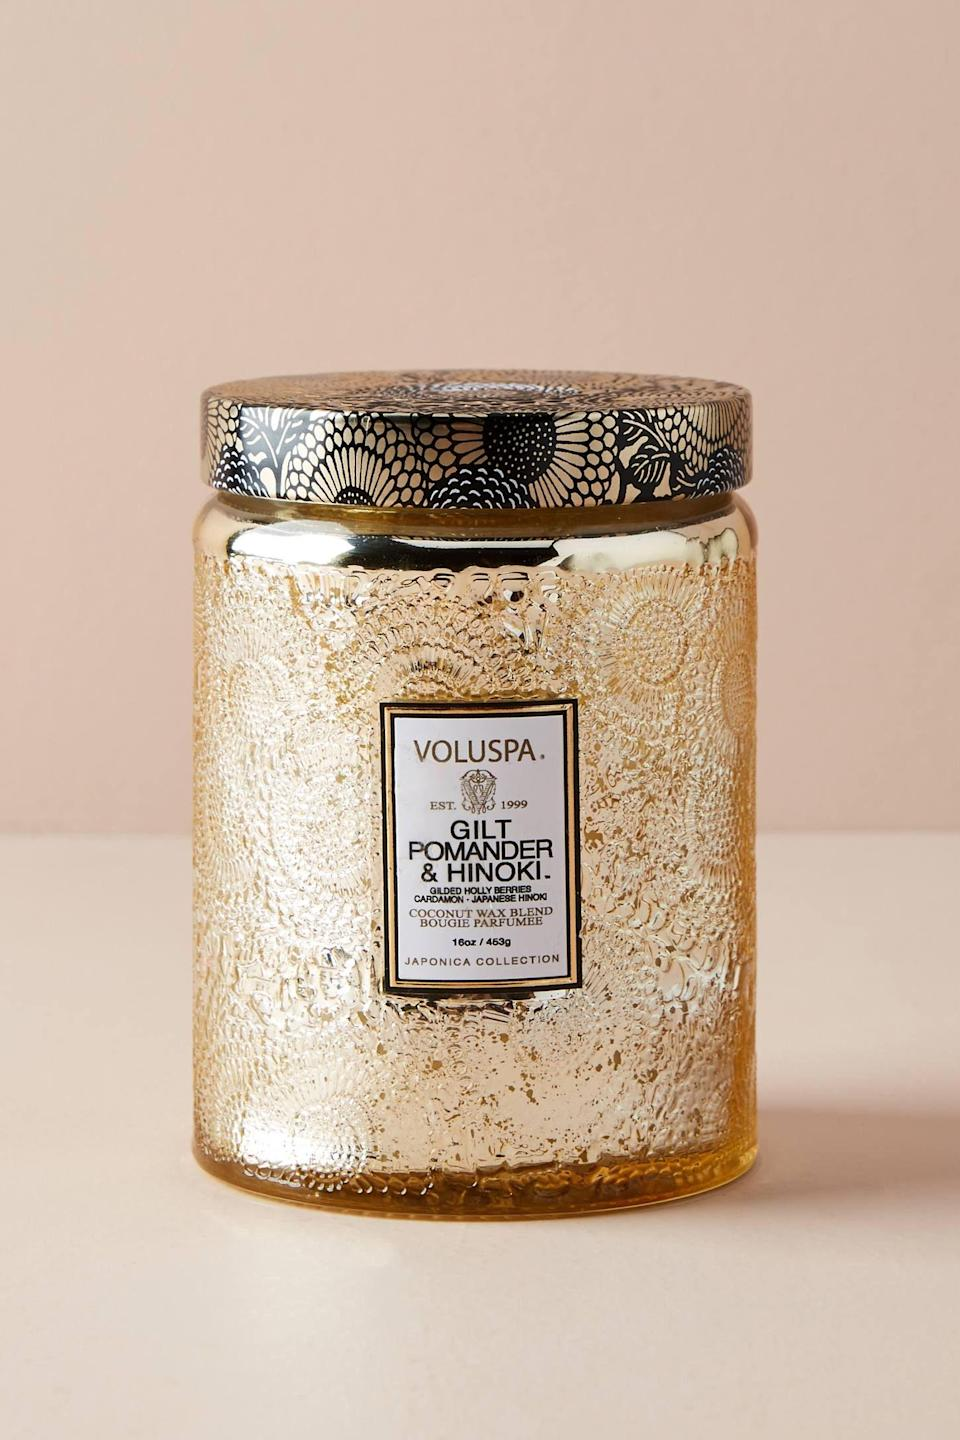 """<p><strong>Voluspa Anthropologie</strong></p><p>anthropologie.com</p><p><strong>$24.00</strong></p><p><a href=""""https://go.redirectingat.com?id=74968X1596630&url=https%3A%2F%2Fwww.anthropologie.com%2Fshop%2Fvoluspa-limited-edition-cut-glass-jar-candle%3Fcolor%3D027%26type%3DSTANDARD%26size%3DOne%2BSize%26quantity%3D1&sref=https%3A%2F%2Fwww.womansday.com%2Frelationships%2Ffamily-friends%2Fg27191135%2Flast-minute-mothers-day-gifts%2F"""" rel=""""nofollow noopener"""" target=""""_blank"""" data-ylk=""""slk:Shop Now"""" class=""""link rapid-noclick-resp"""">Shop Now</a></p><p>Anthropologie's Voluspa candles are packaged in etched glass jars and come in several elegant scents, from Crane Flower to Santiago Huckleberry. To ensure you have one in time for Mother's Day, select in-store pick up at checkout.</p>"""